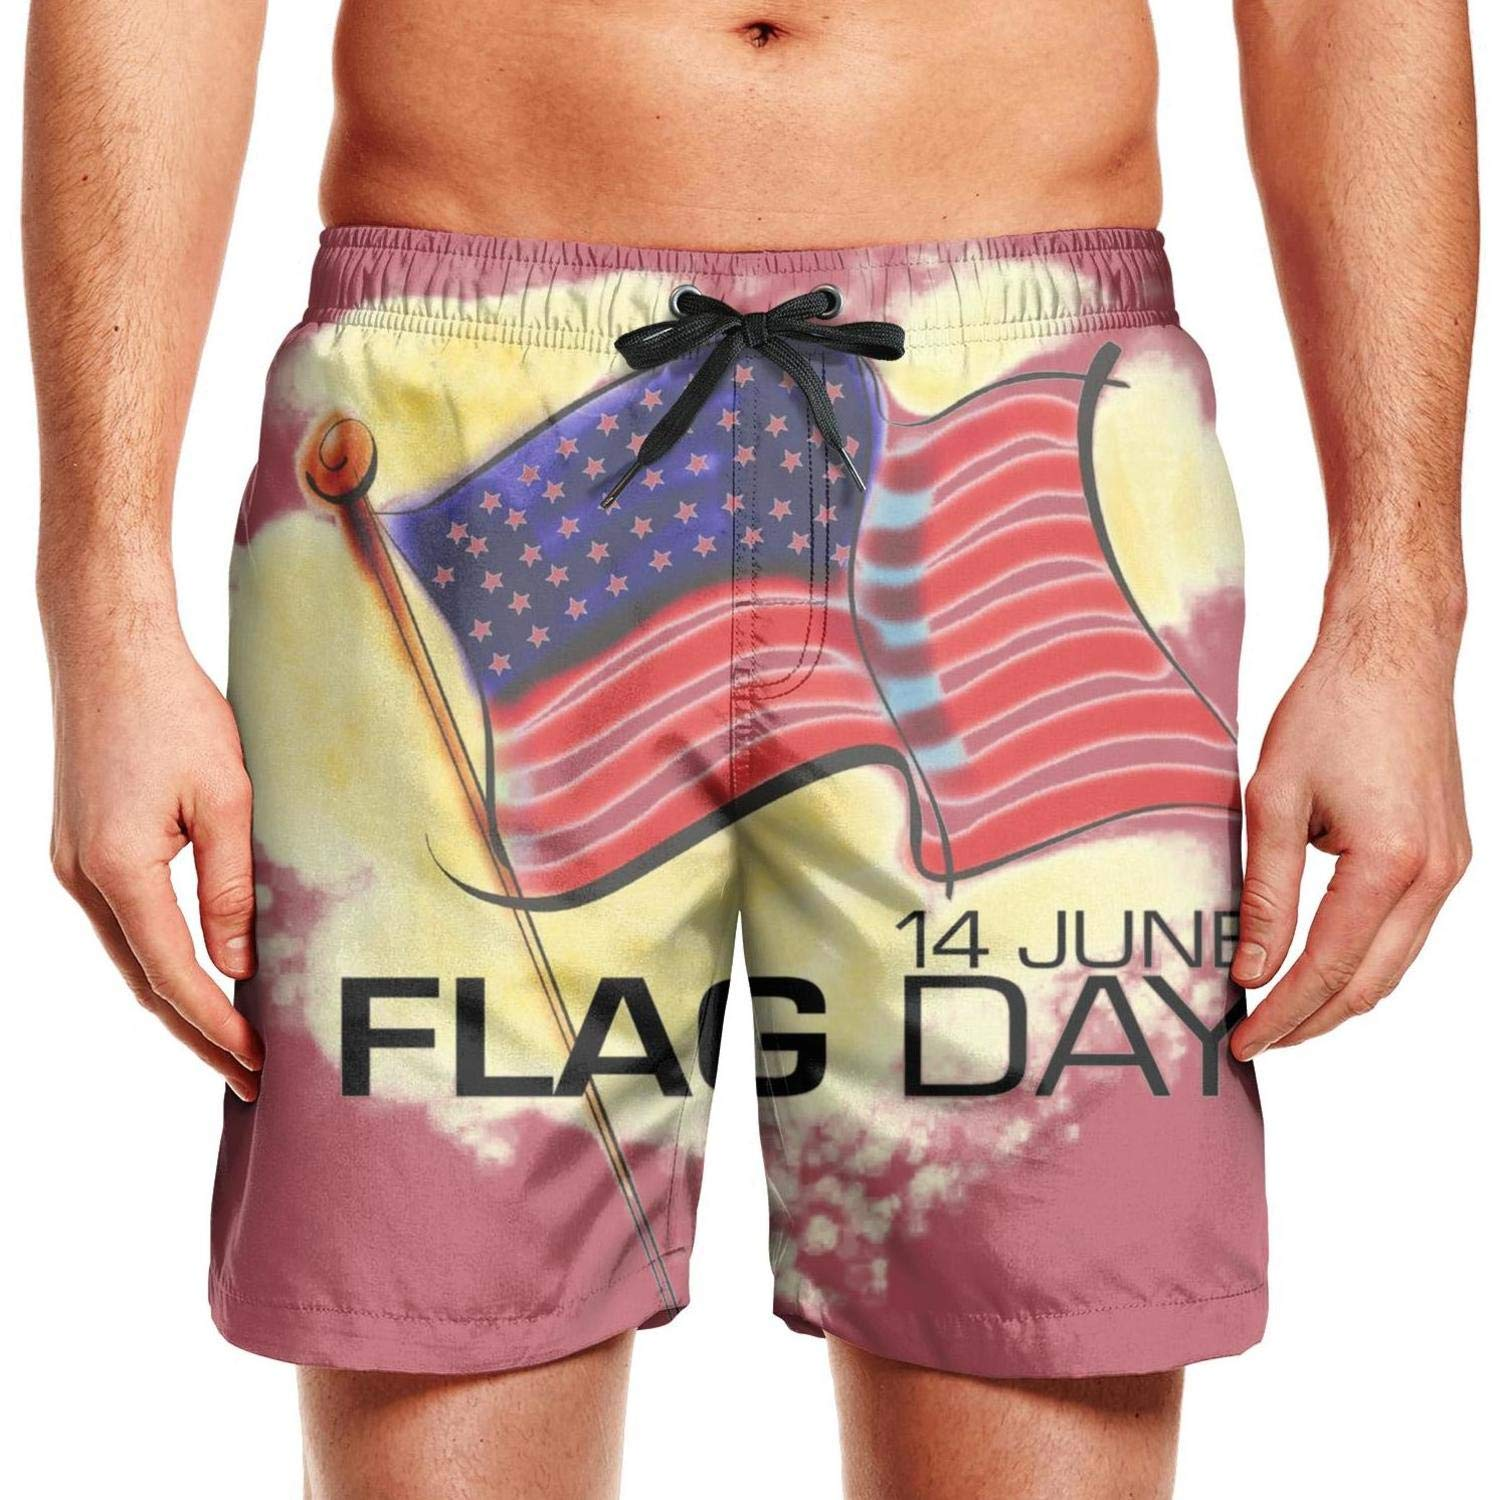 Quick-Dry Mens Beach Shorts 14 June American Flag Day Swim Trunks with Adjustable Drawstring